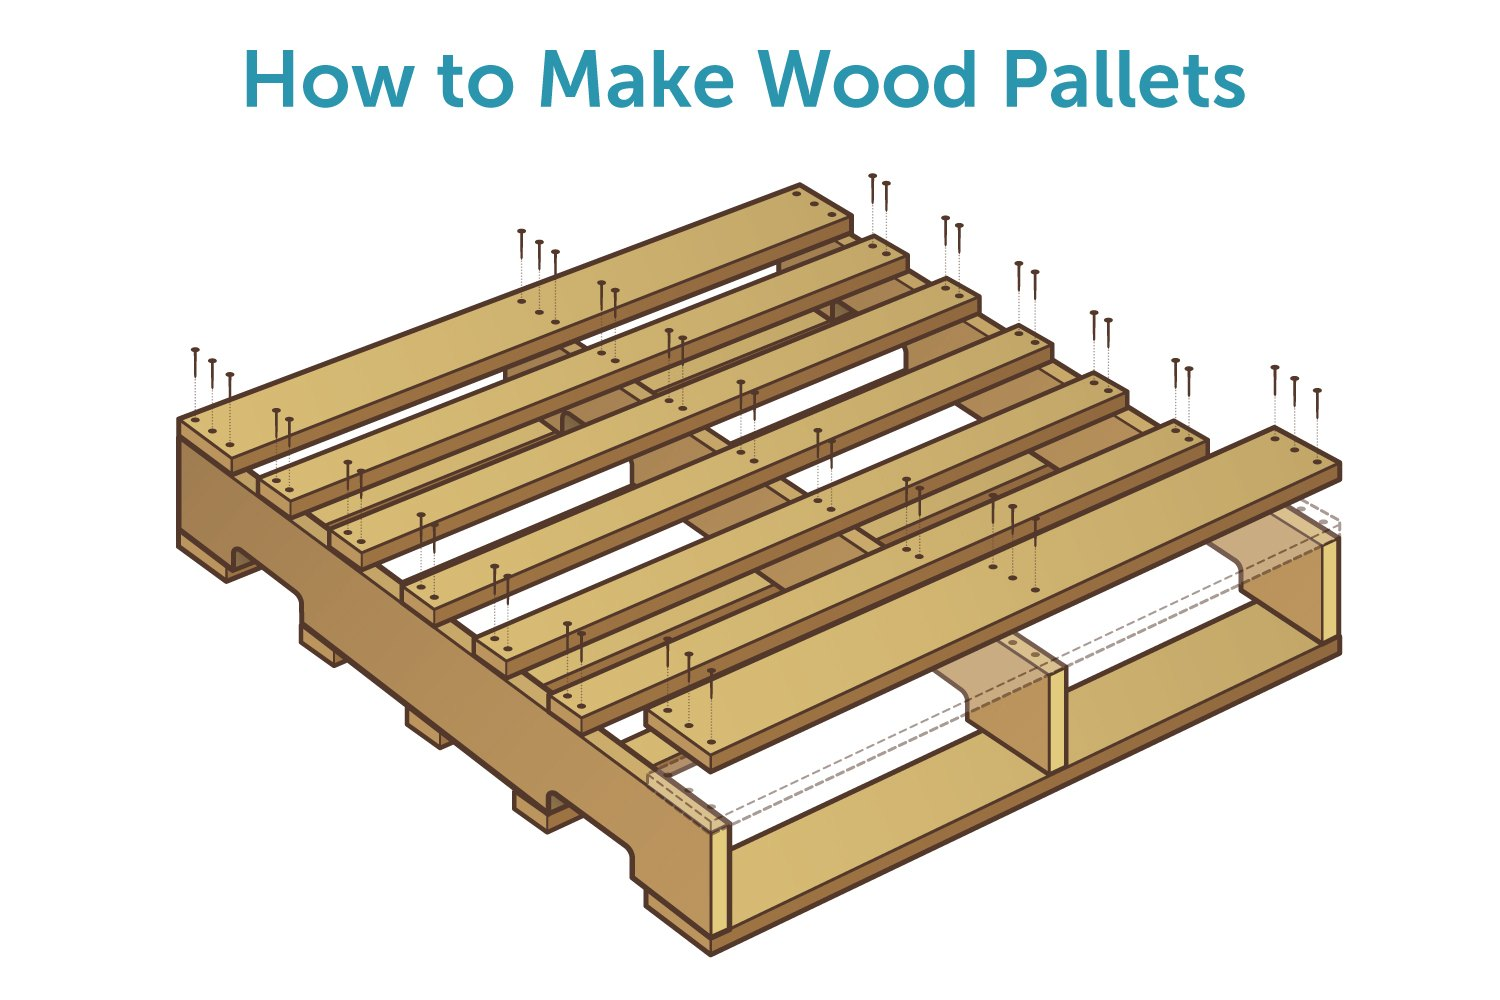 How to make wood pallets with pictures ehow - Make outdoor pallet swing step step guide ...